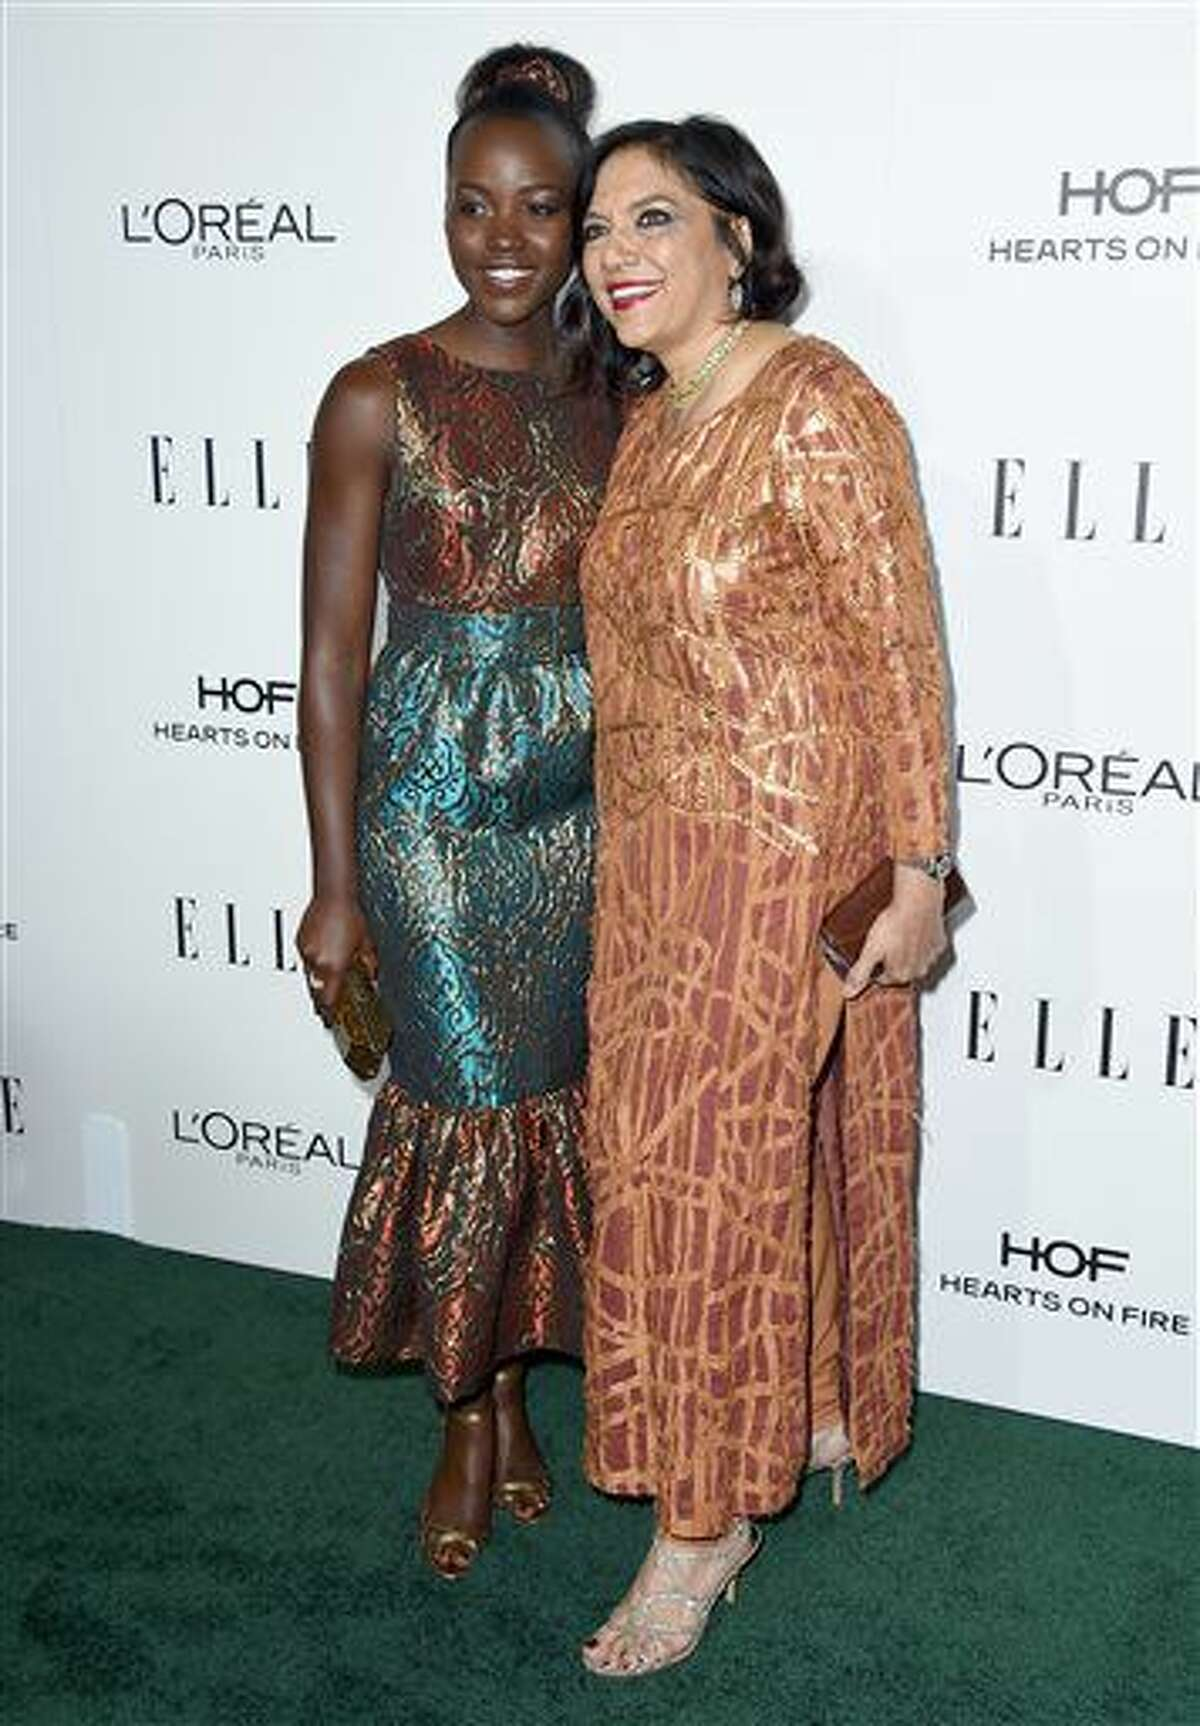 Lupita Nyong'o, left, and Mira Nair arrive at the 23rd annual ELLE Women in Hollywood Awards at the Four Season Hotel on Monday, Oct. 24, 2016, in Los Angeles. (Photo by Jordan Strauss/Invision/AP)